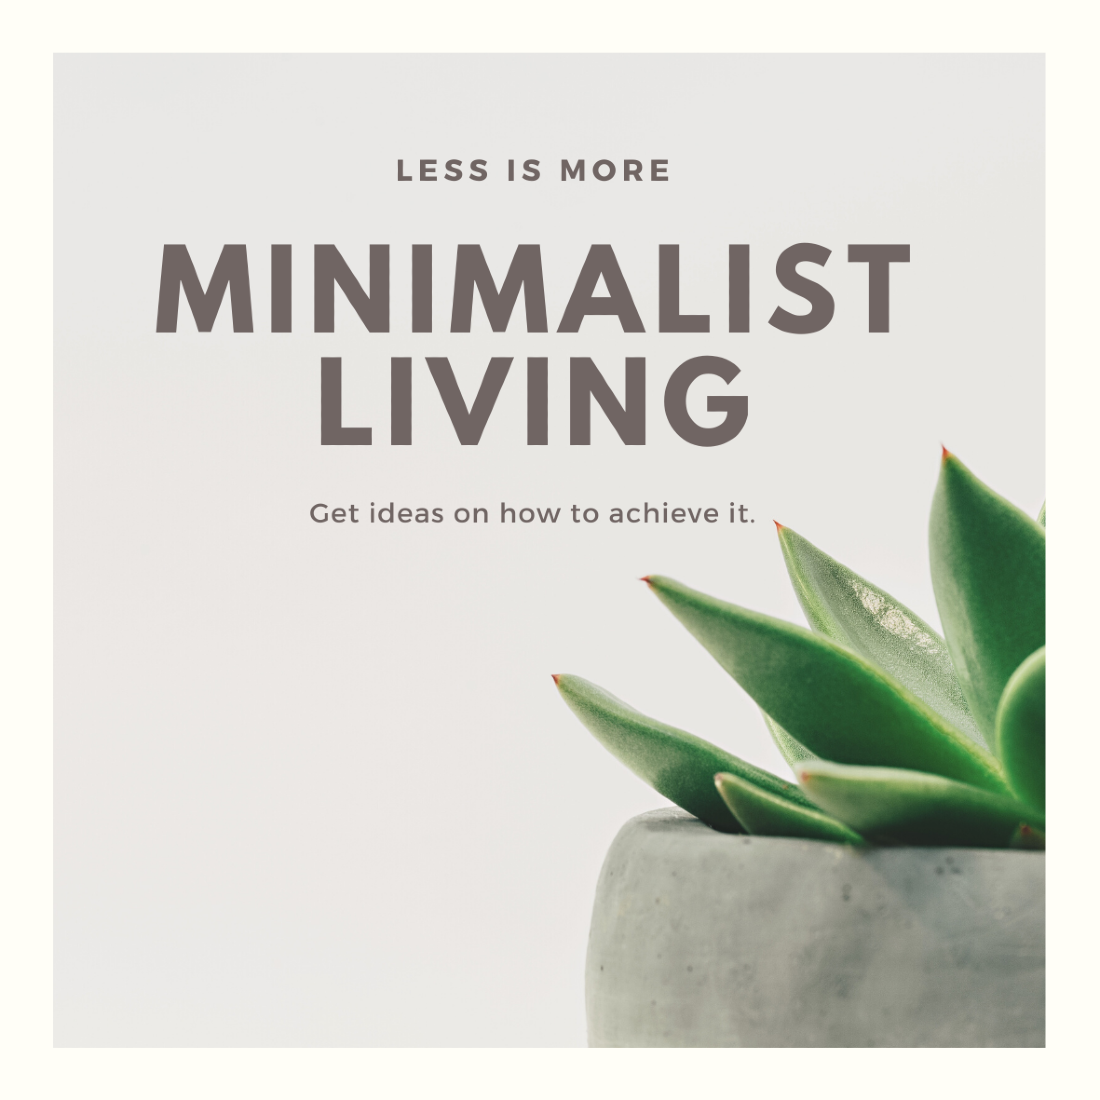 Less is more - Simple living